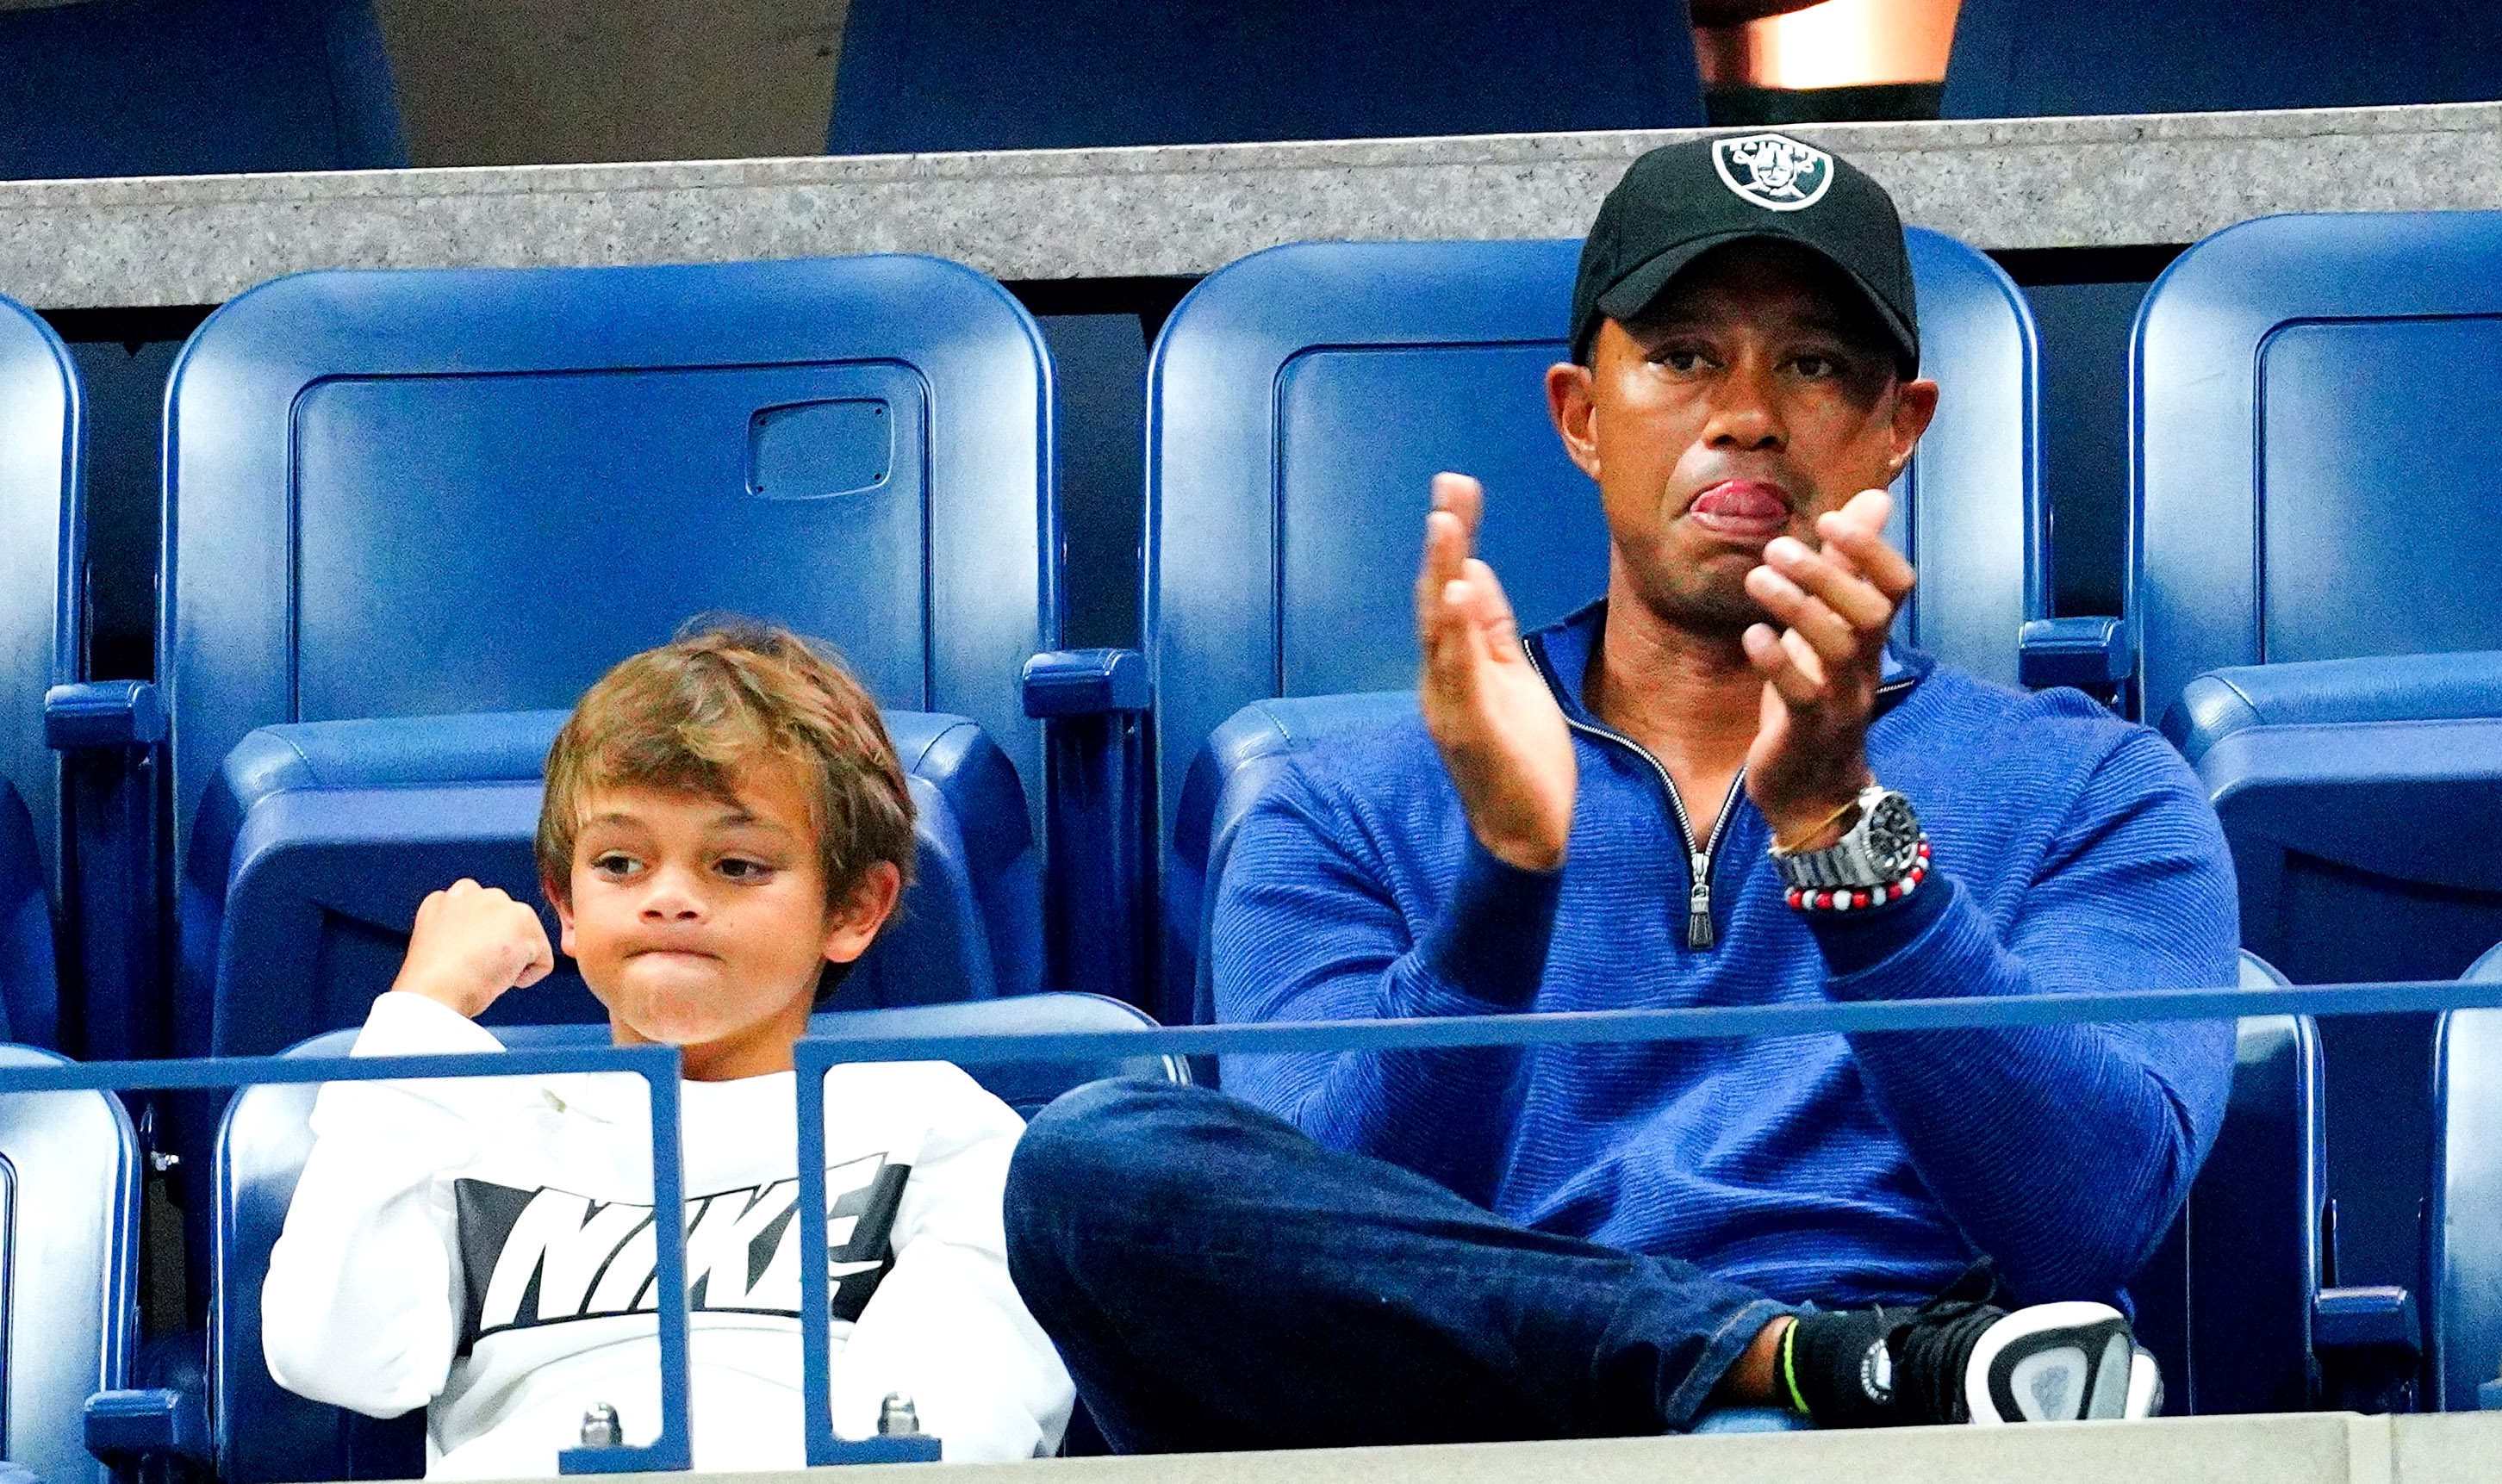 Tiger Woods And Son Charlie Put On A Stripe Show At The Driving Range At PNC Father-Son Challenge